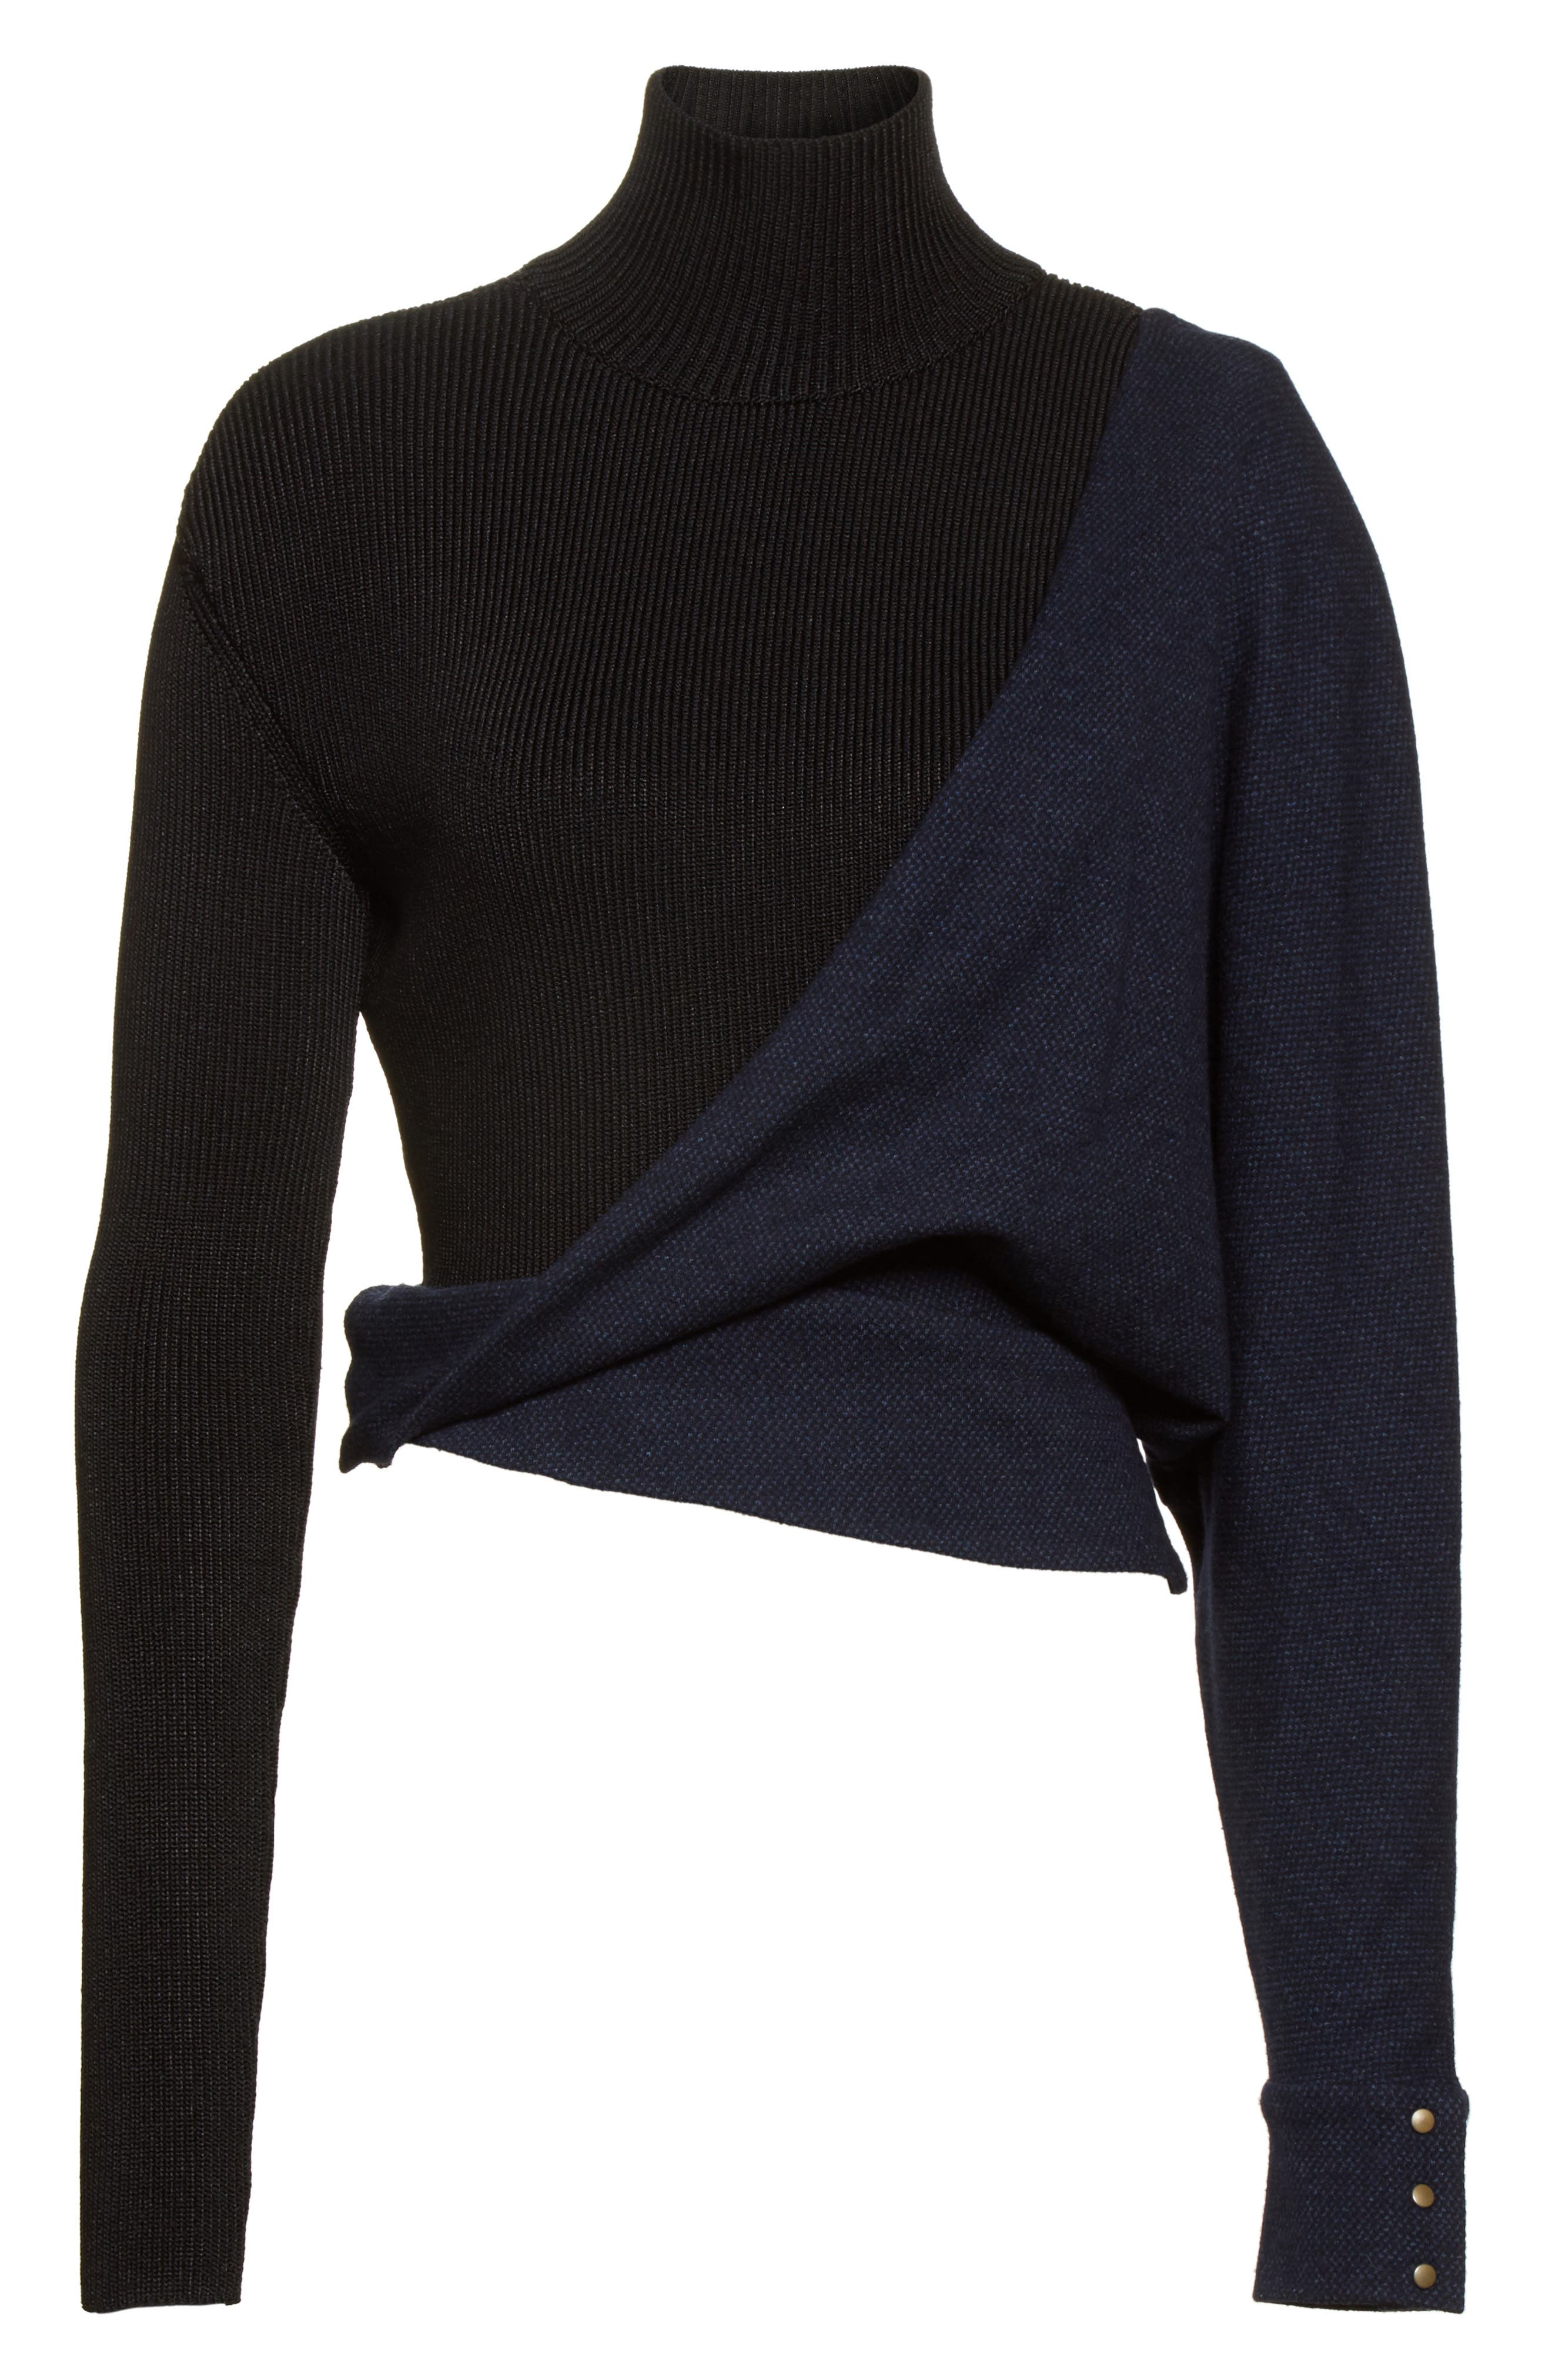 Tweed Jersey & Knit Turtleneck Sweater,                             Alternate thumbnail 7, color,                             Blue Black